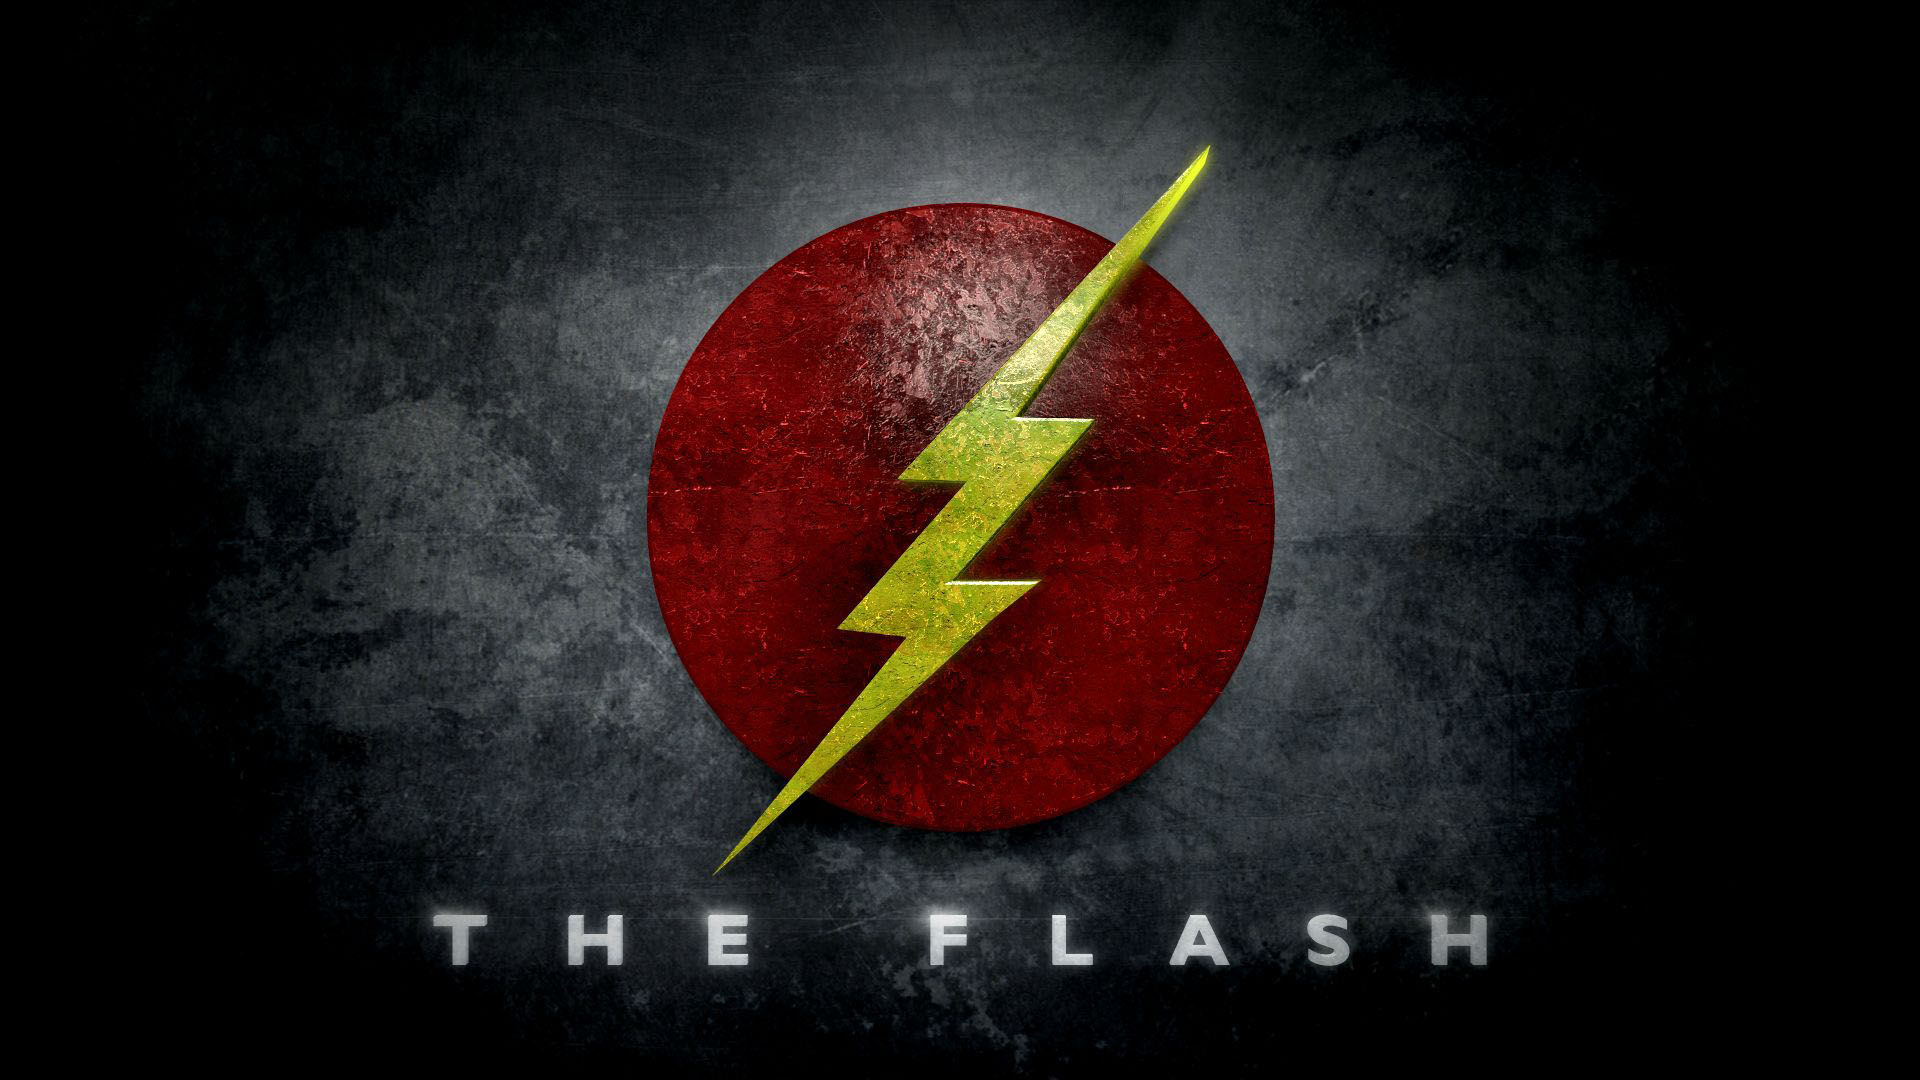 The Flash Symbol Wallpaper